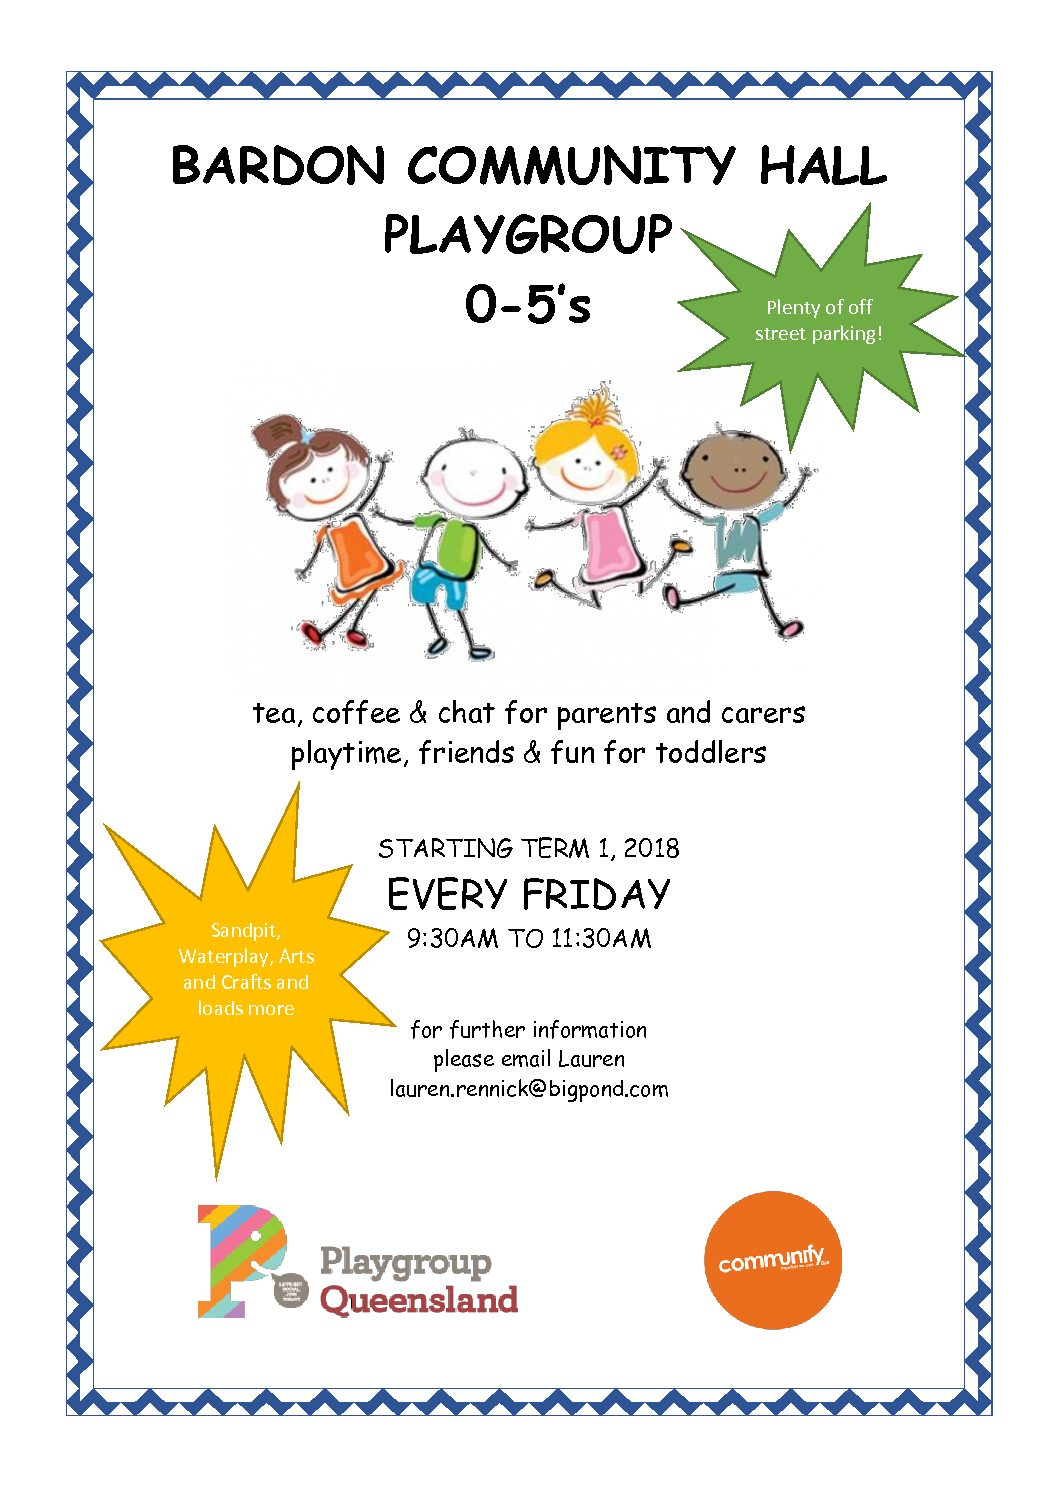 Bardon Community Hall Playgroup